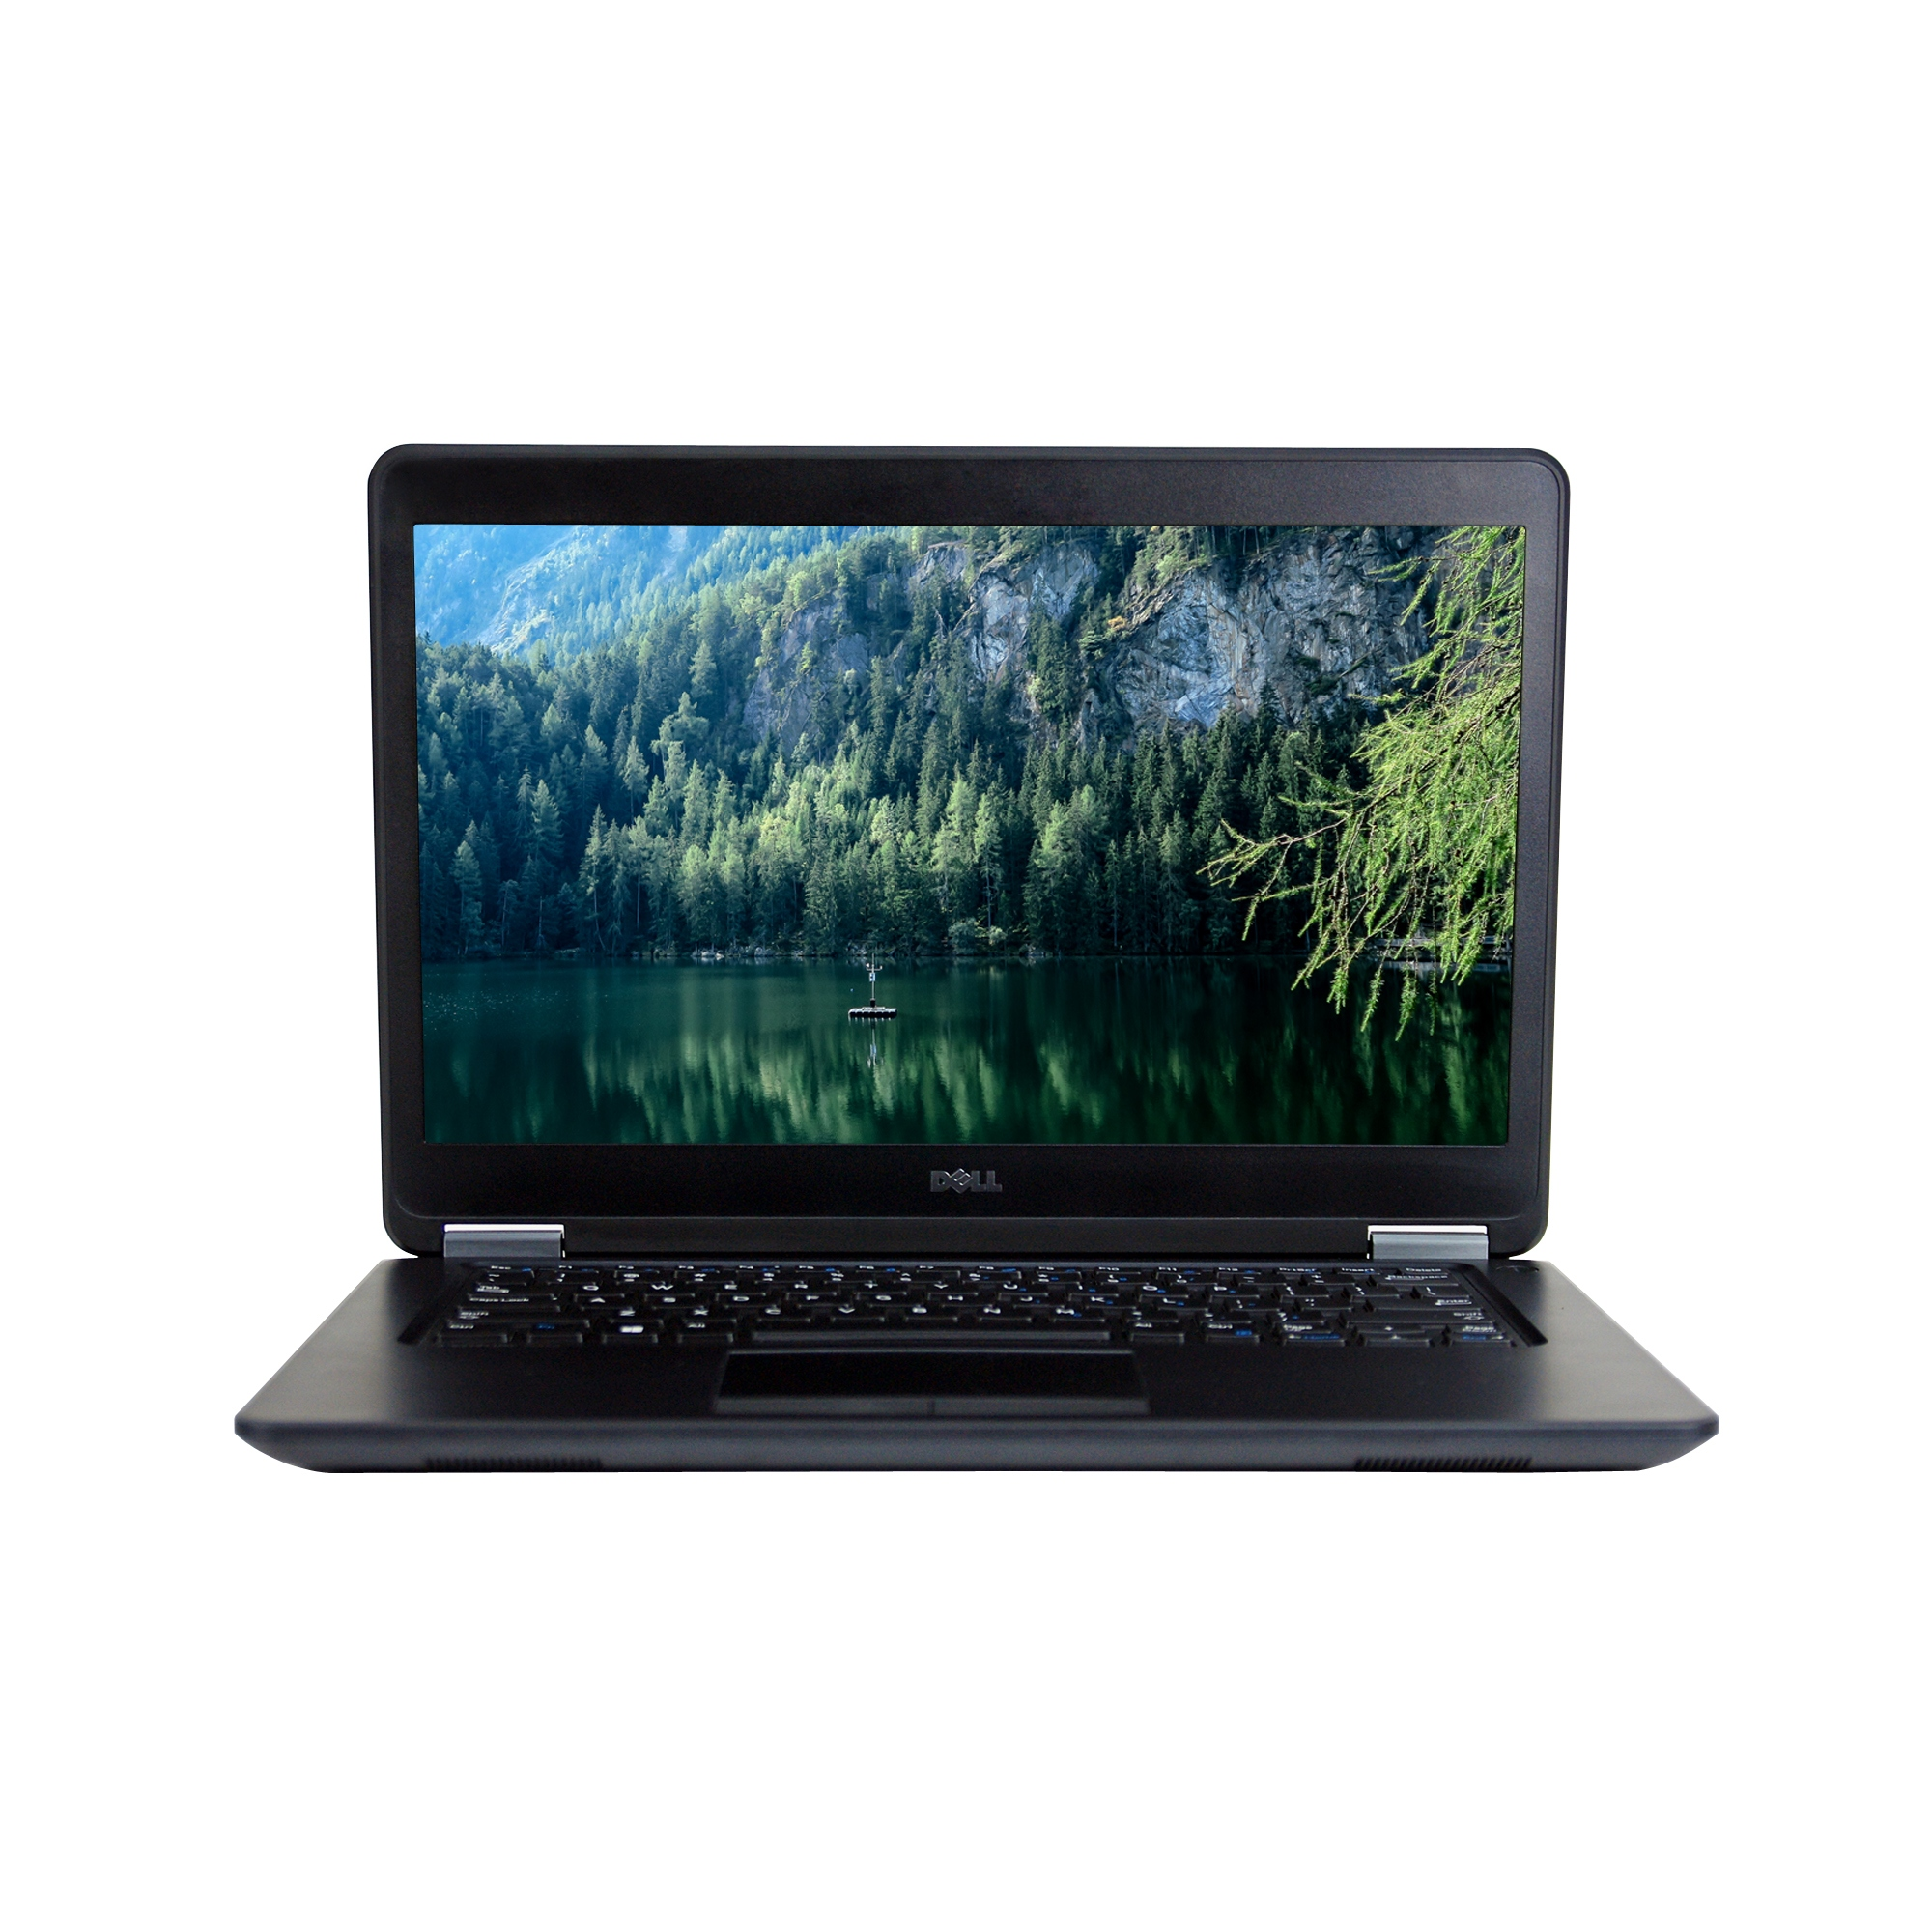 Dell-Latitude-E7450-Core-i7-5600U-2.6GHz-16GB-RAM-500GB-SSD-Win-10-Pro-14